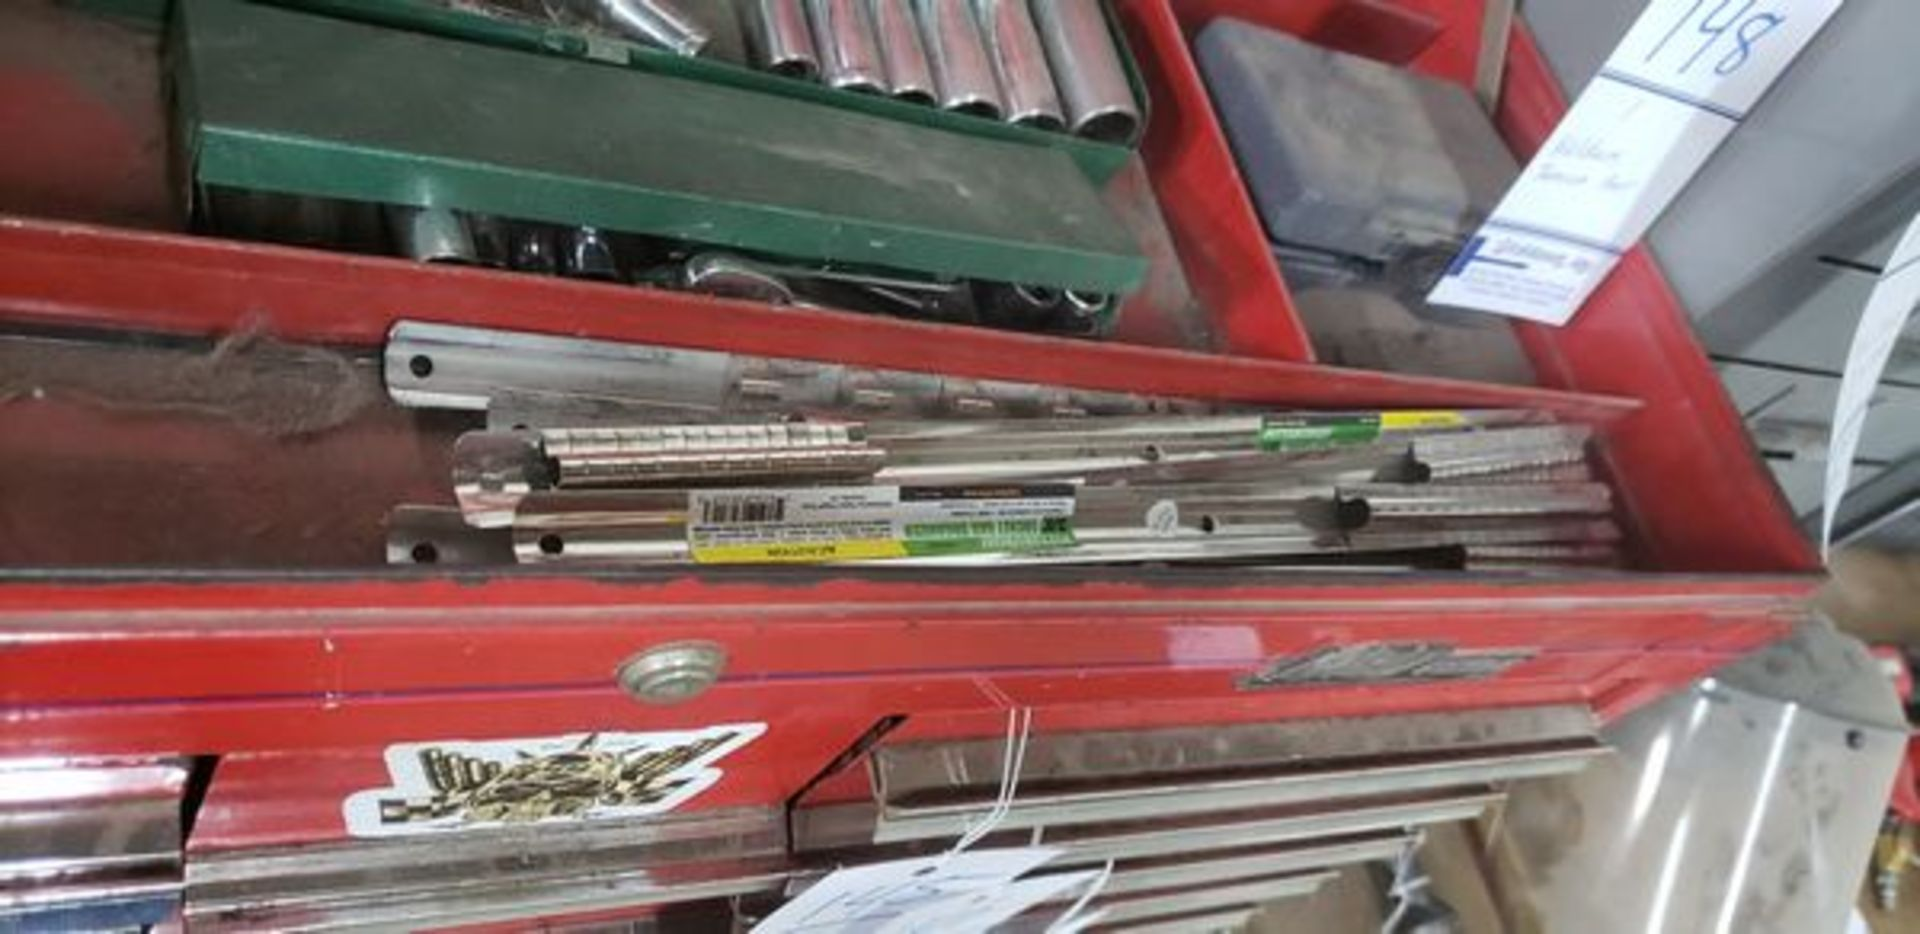 ASSORTED SOCKET SETS WITH EXTRAS - Image 6 of 8